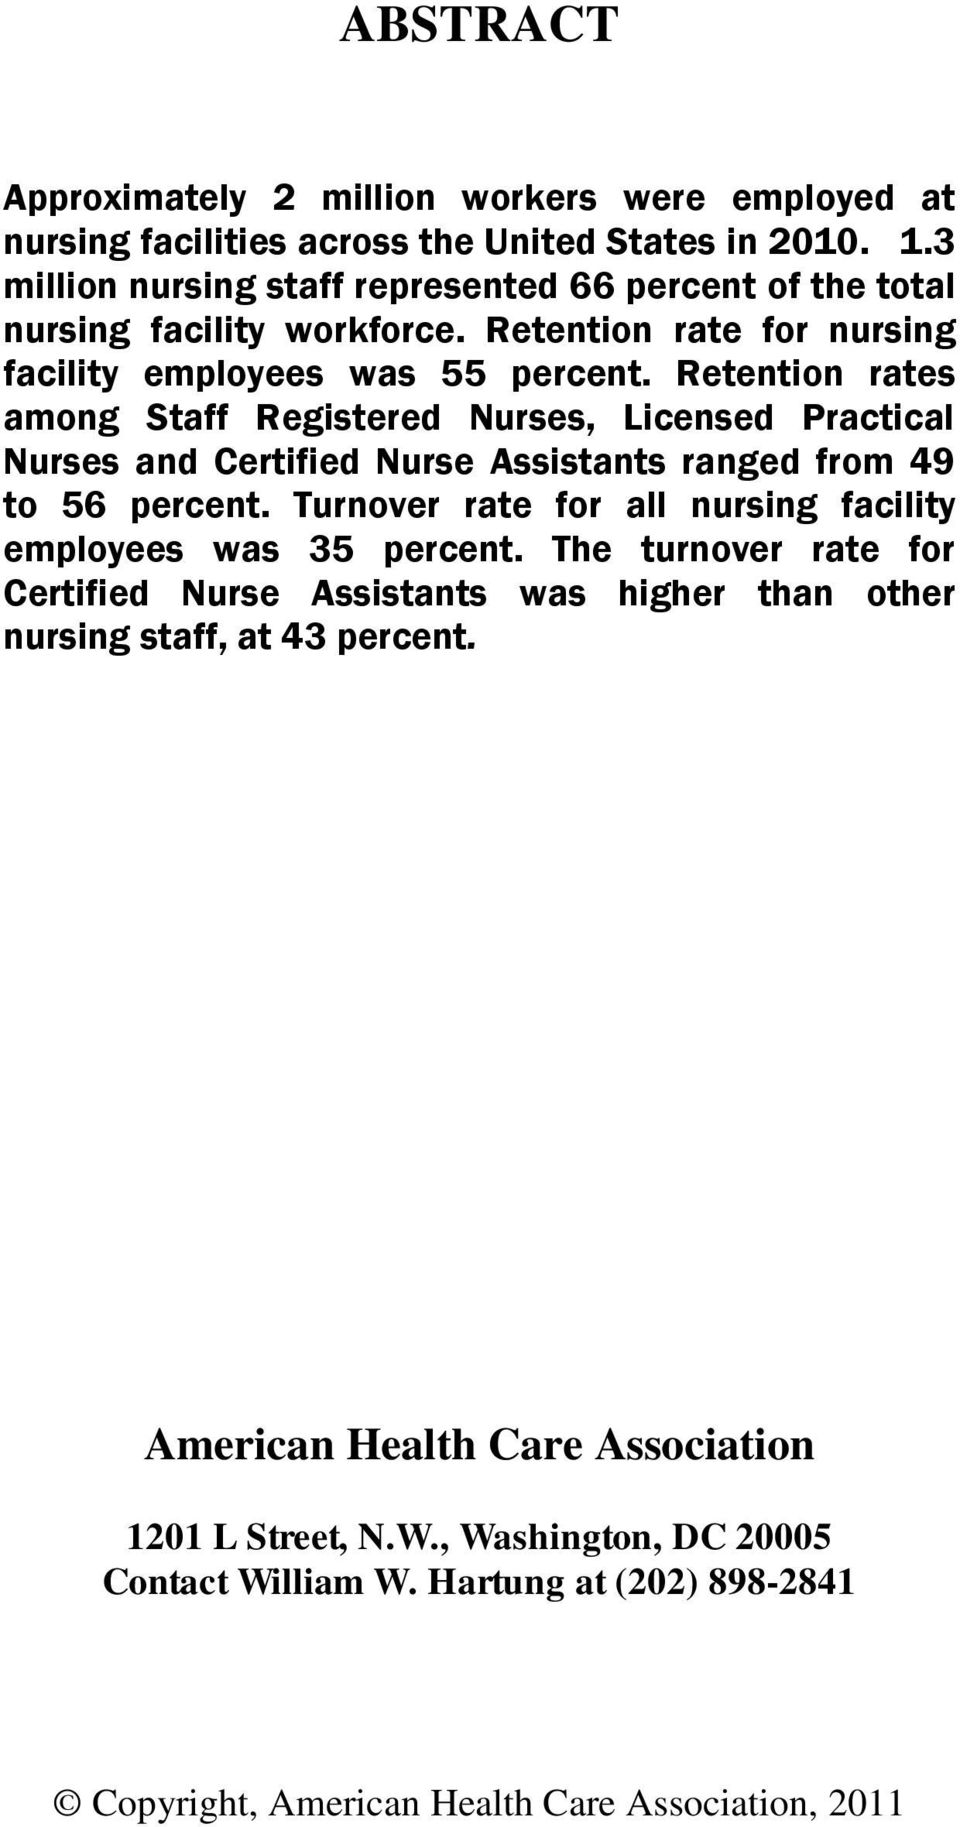 Retention rates among Staff Registered Nurses, Licensed Practical Nurses and Certified Nurse Assistants ranged from 49 to 56 percent.